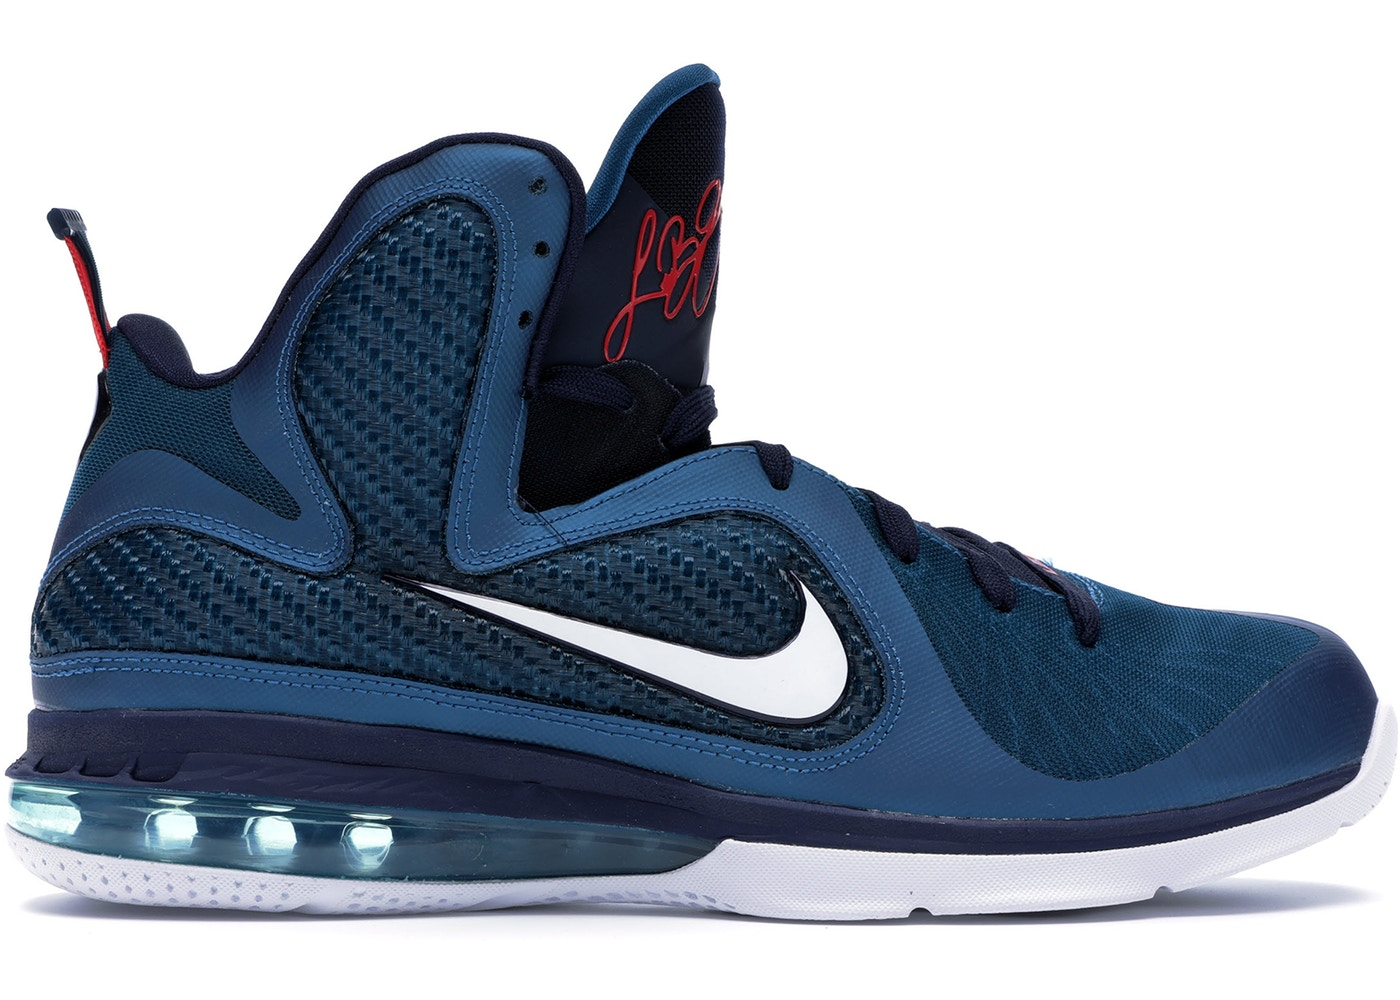 5100a9842a2 Buy Nike LeBron 9 Shoes   Deadstock Sneakers